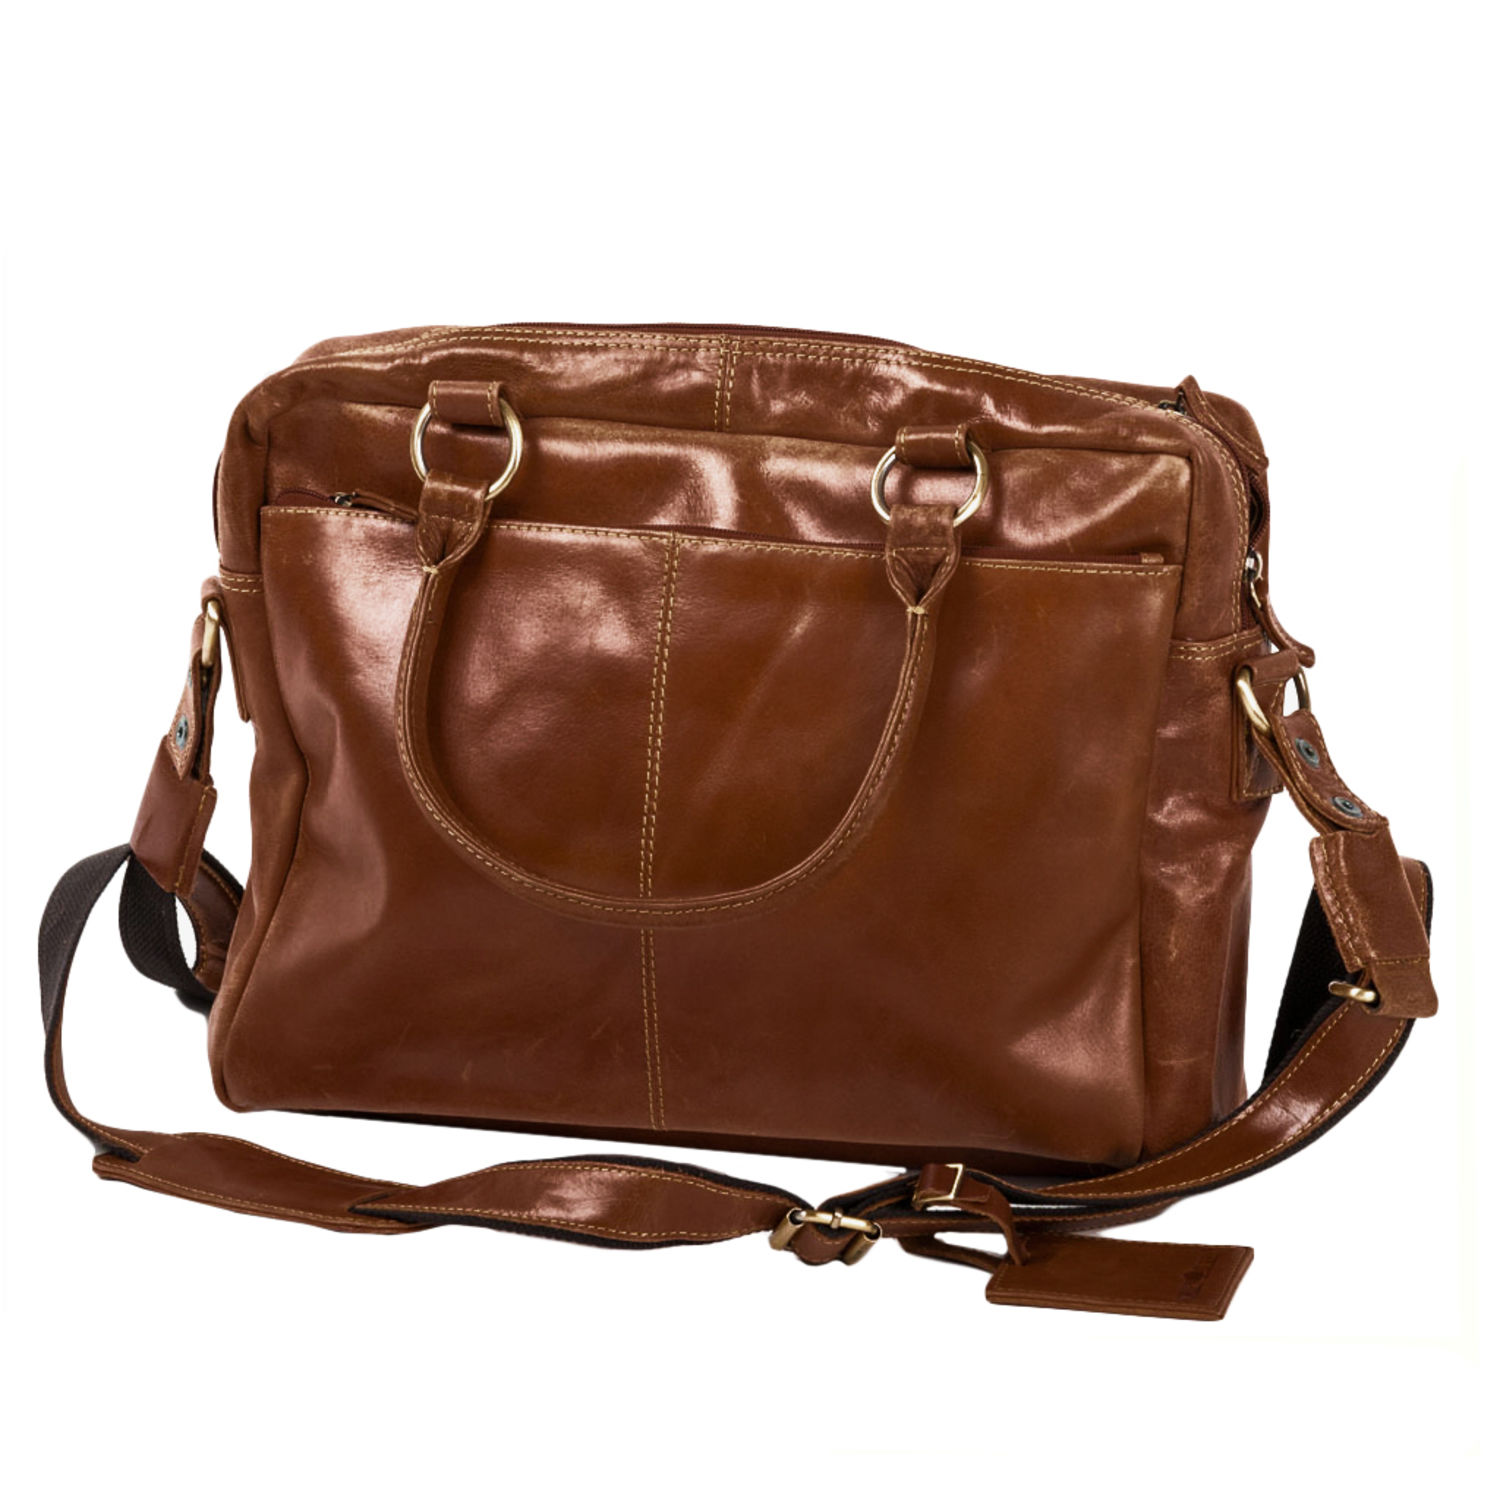 2bc5489d98948 Greenburry Expedition 564-24 Leder Schultertasche Messenger ...